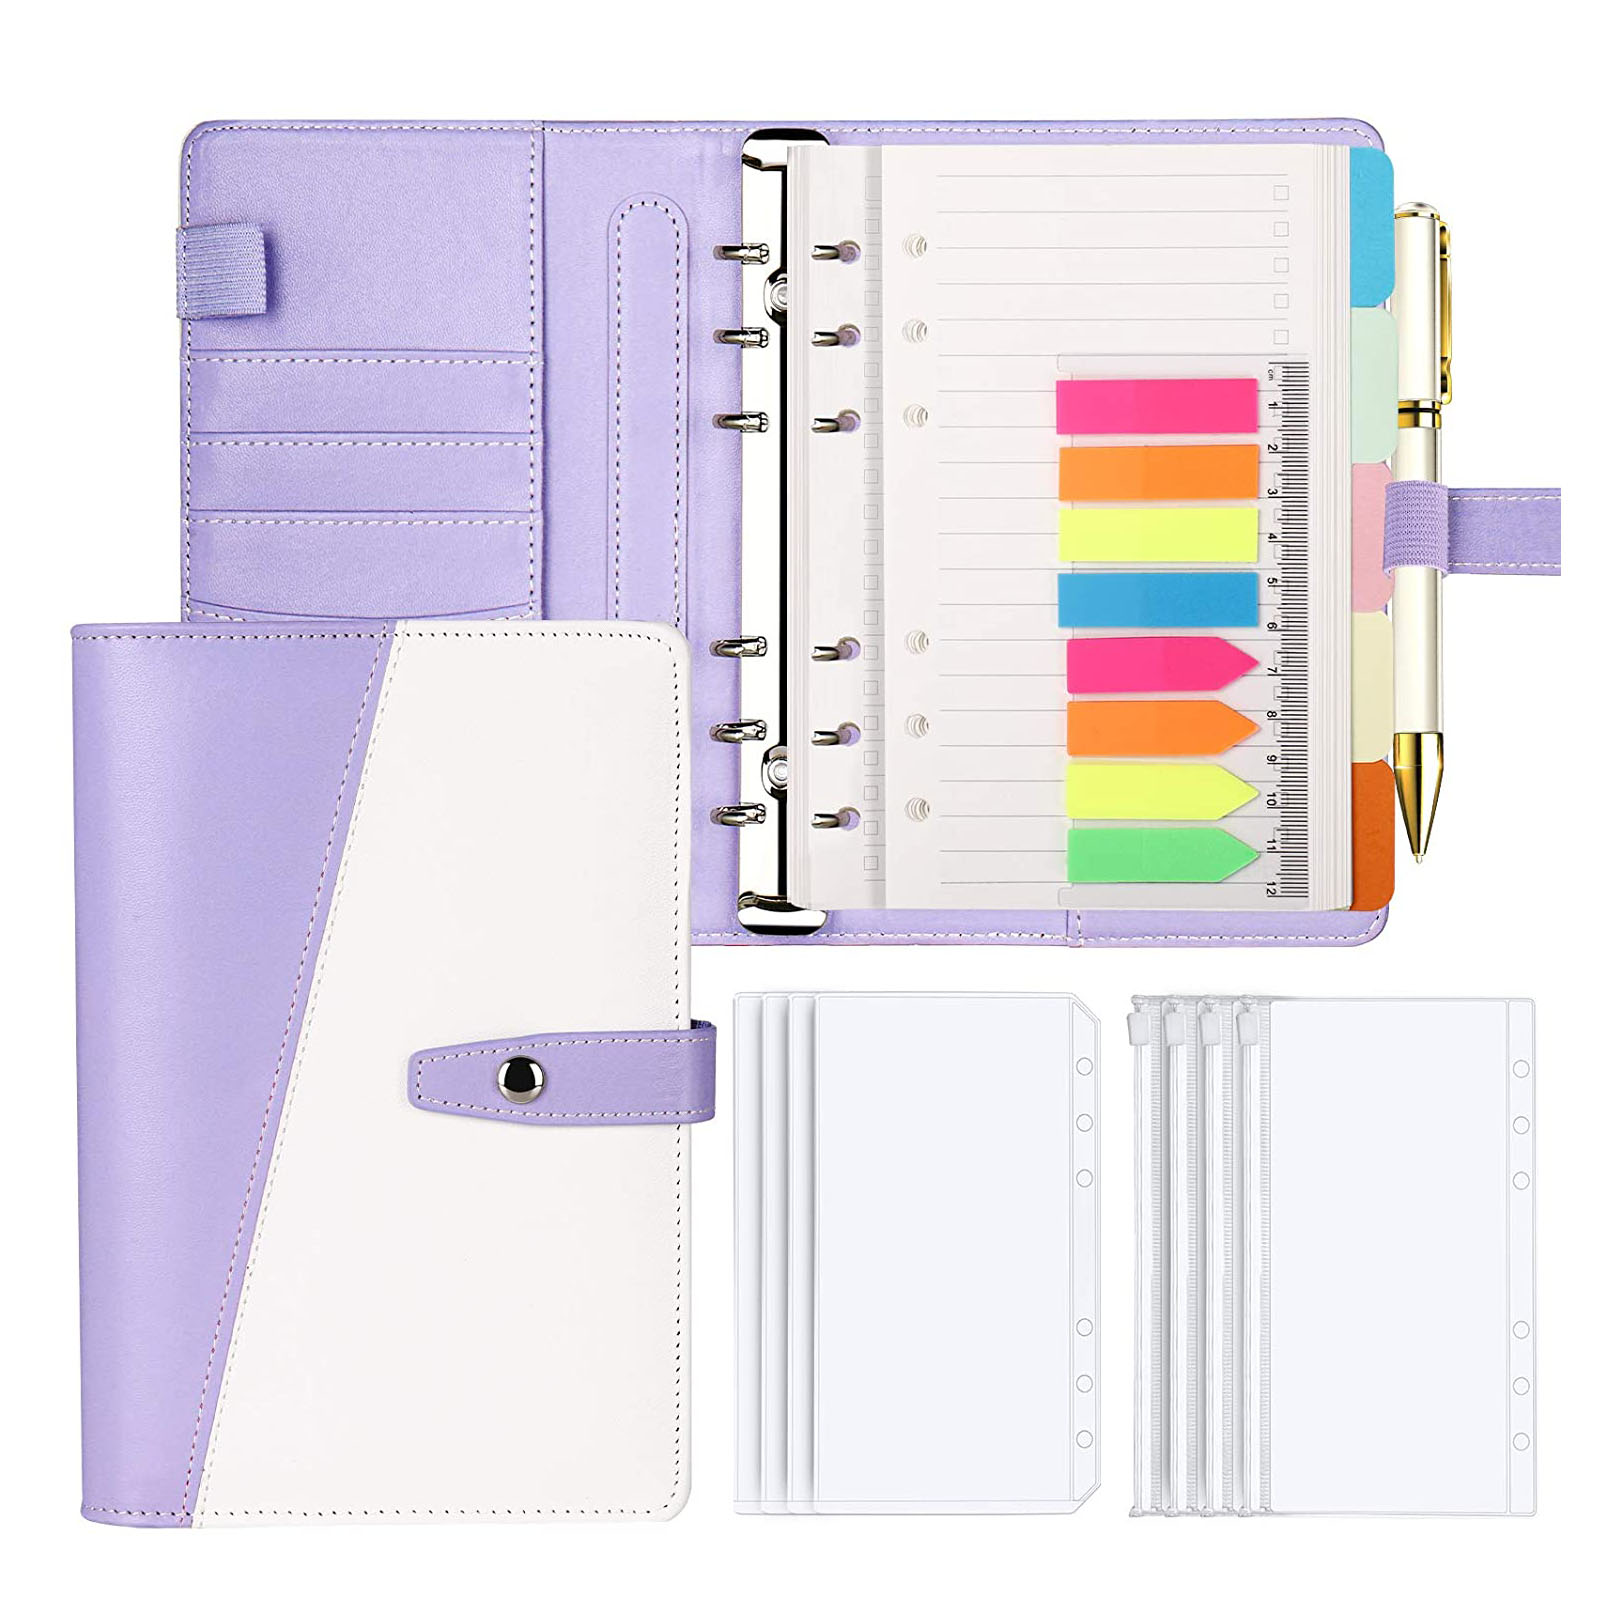 mini portable handy money counter for most currency note bill cash counting machine eu v40 financial equipment A6 Budget Binder Money Organizer for Cash, Portable Money Saving Binder, Binder Cover with Zipper Pockets, Colorful Dividers